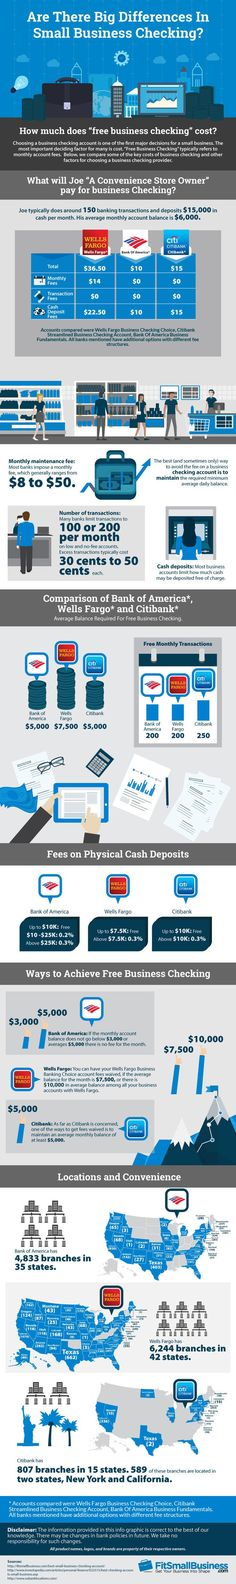 How Much Does Free Business Checking Cost? #Infographic #Business http://itz-my.com